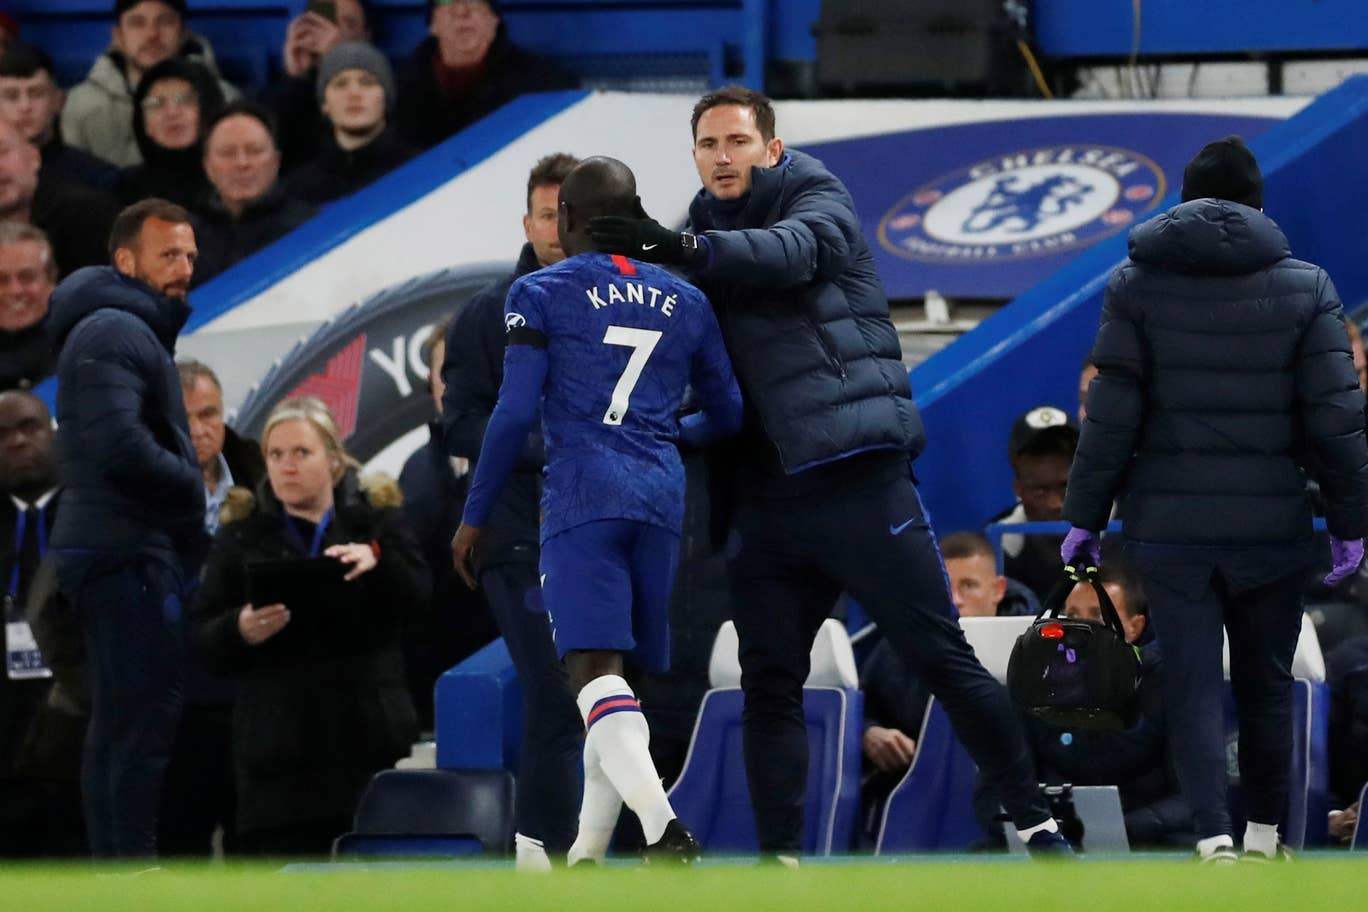 Chelsea boss Frank Lampard pessimistic over N'Golo Kante injury picked up against Man Utd - Bóng Đá